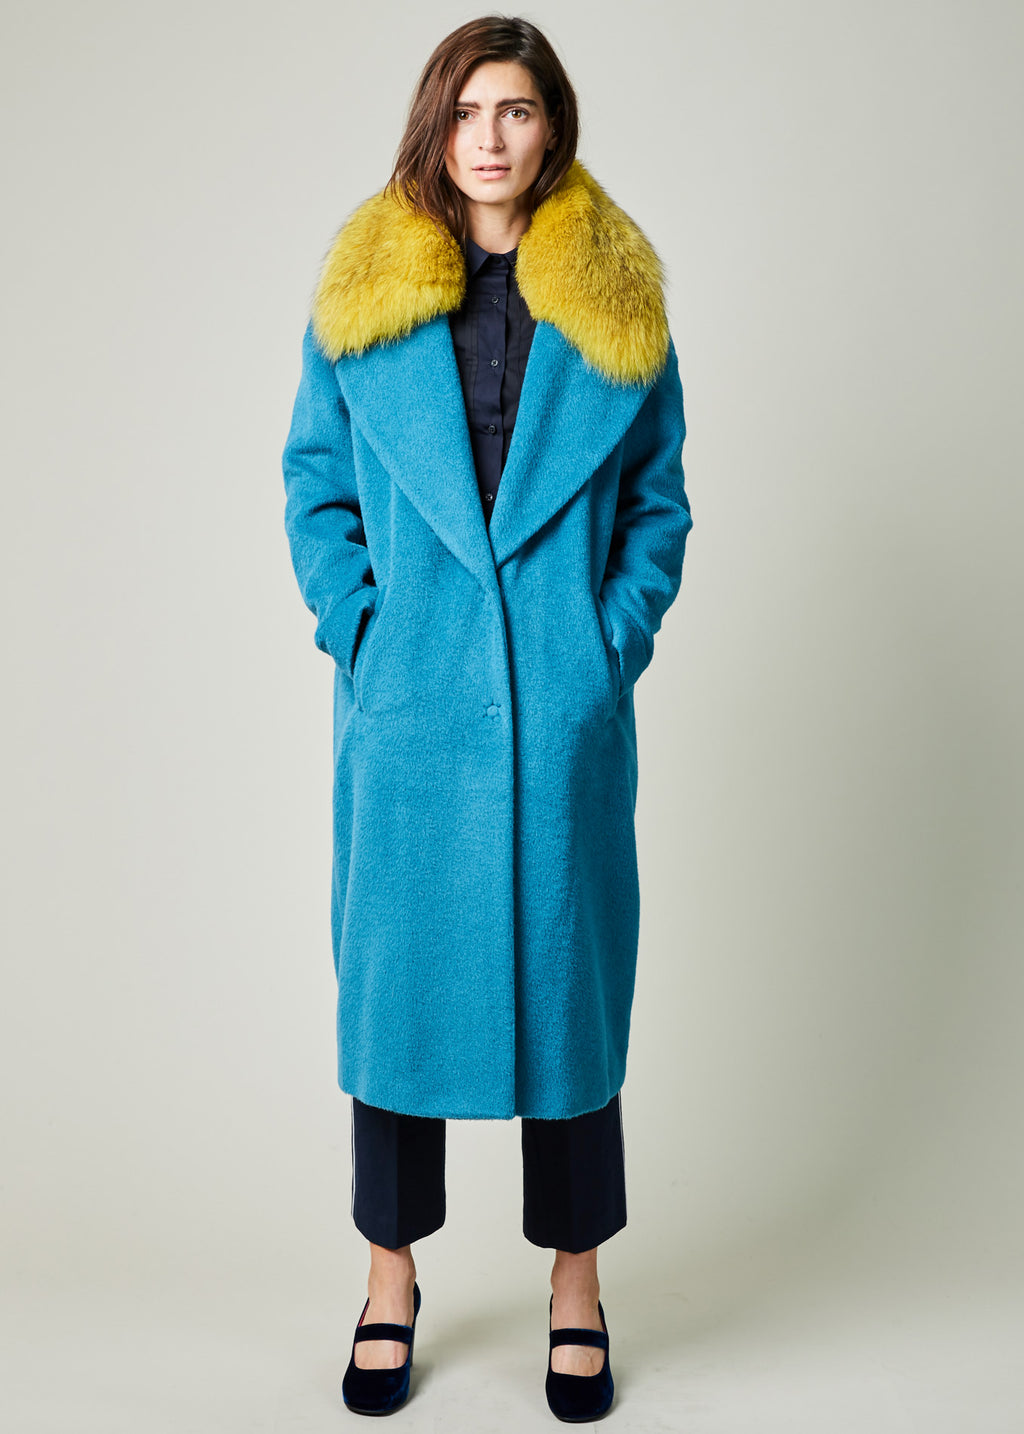 Shawl Collar Wool Coat